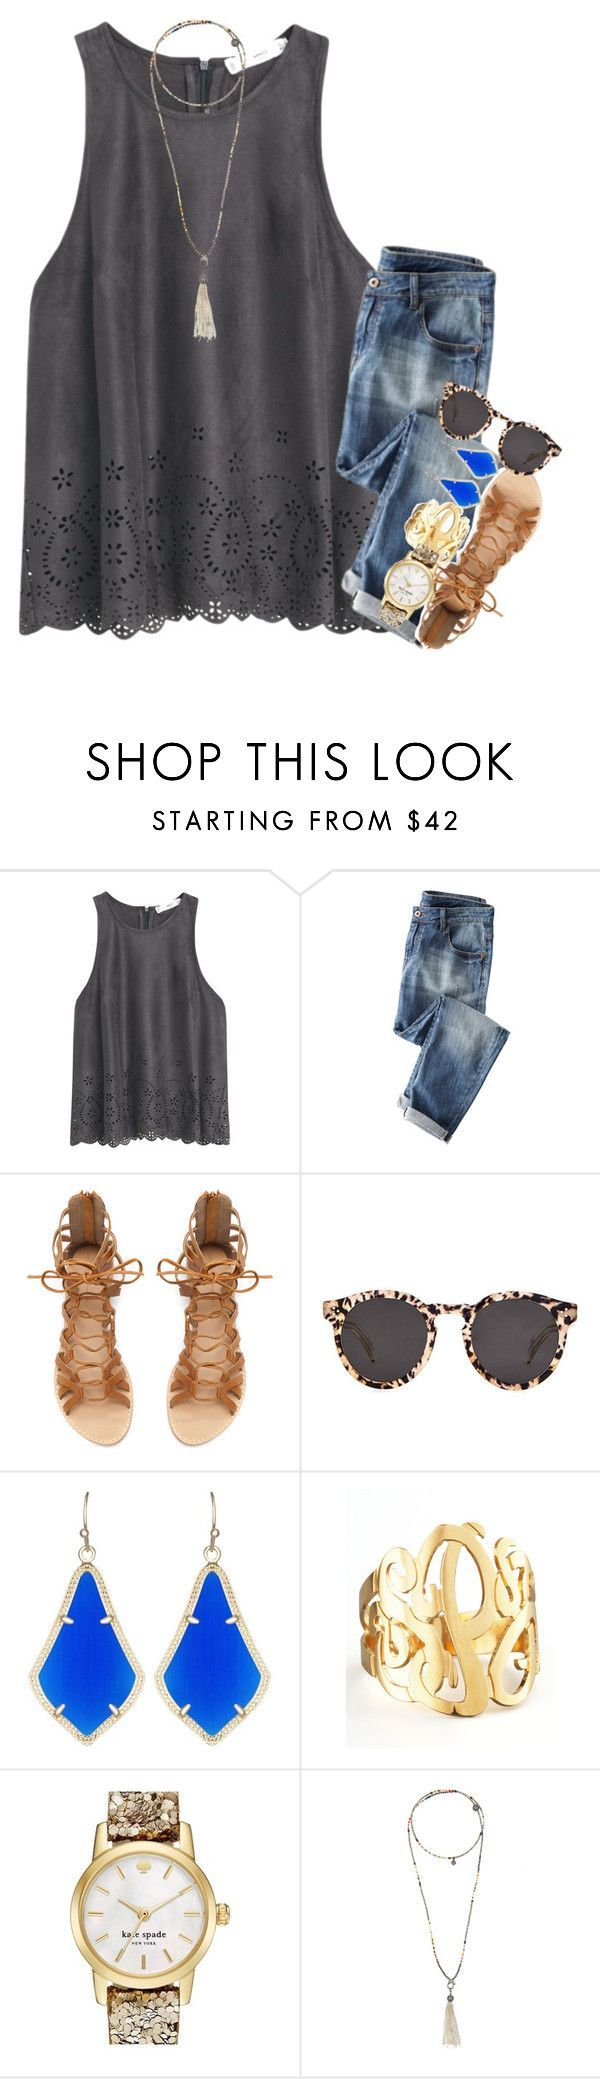 """6 away from 1k!"" by kate-elizabethh ❤ liked on Polyvore…"